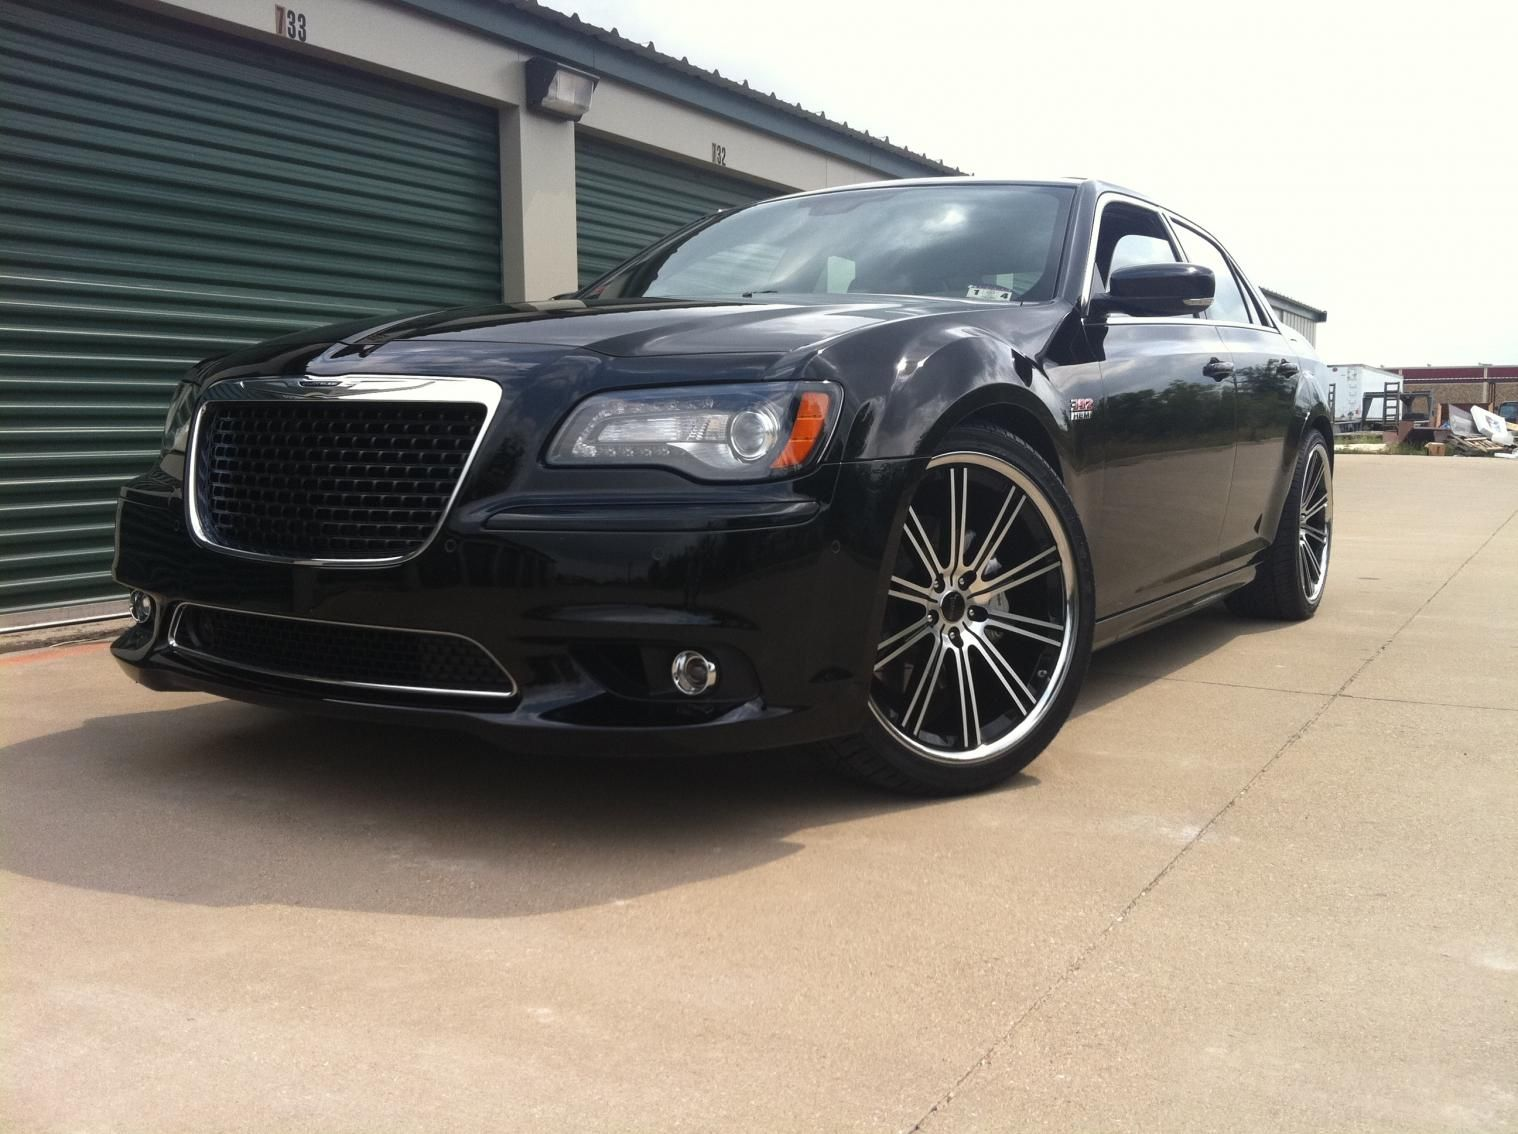 "2013 chrysler 300 srt8 on 30 inch wheels 22"" Savini"